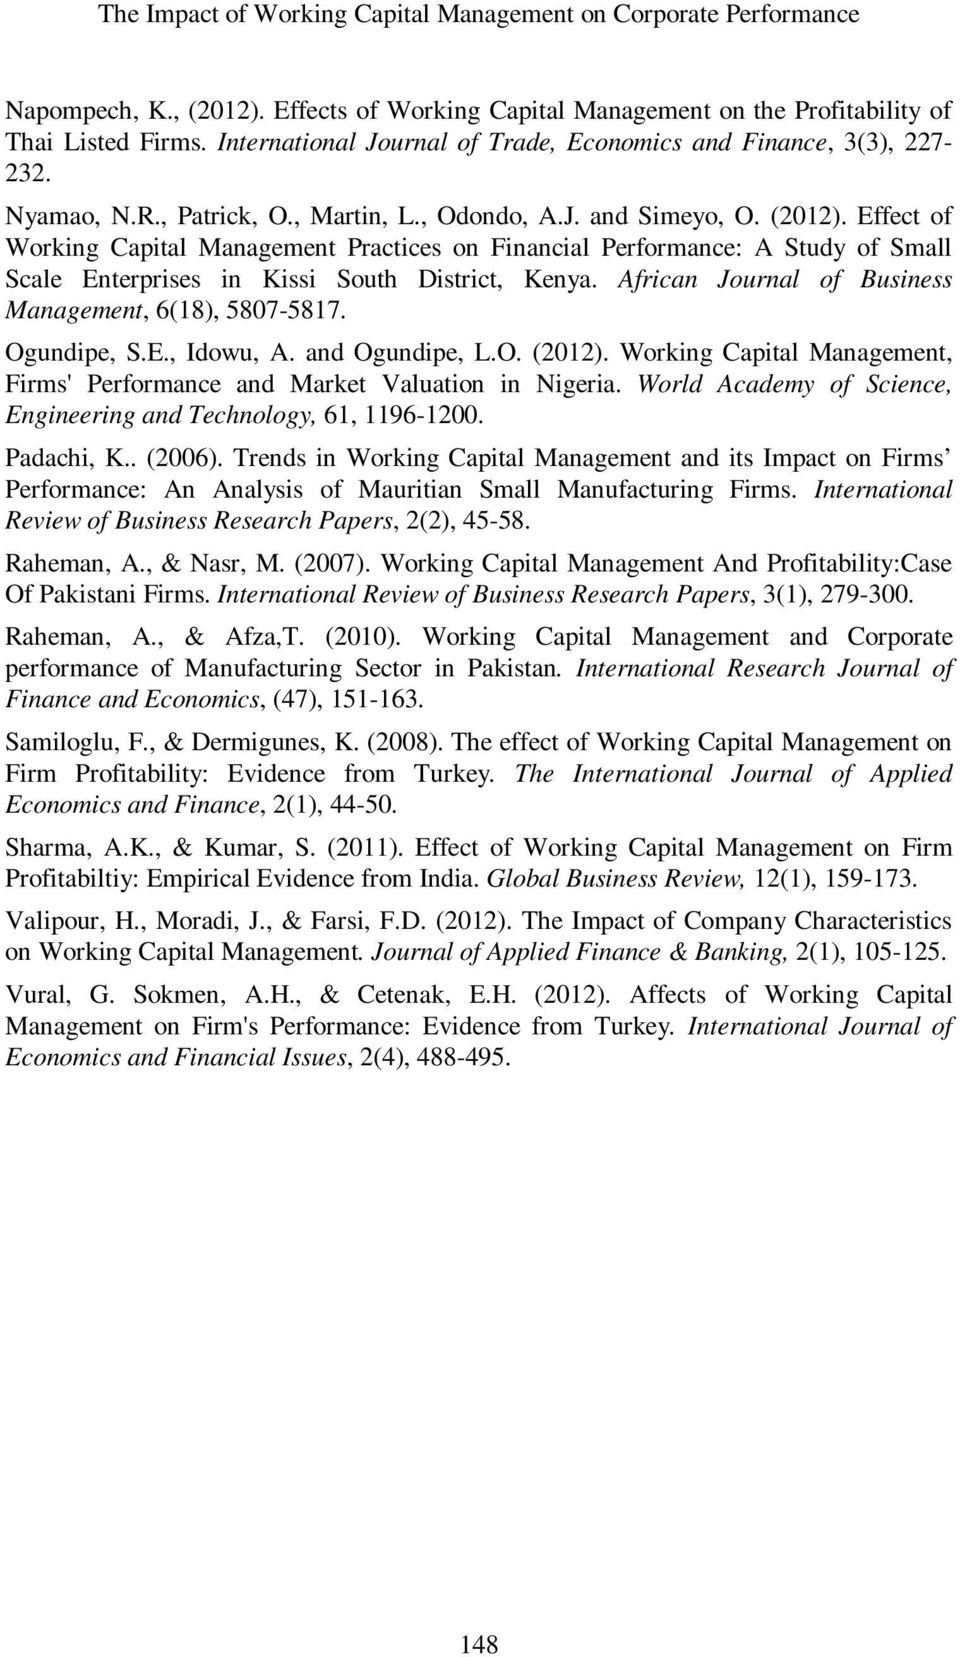 Effect of Working Capital Management Practices on Financial Performance: A Study of Small Scale Enterprises in Kissi South District, Kenya. African Journal of Business Management, 6(18), 5807-5817.